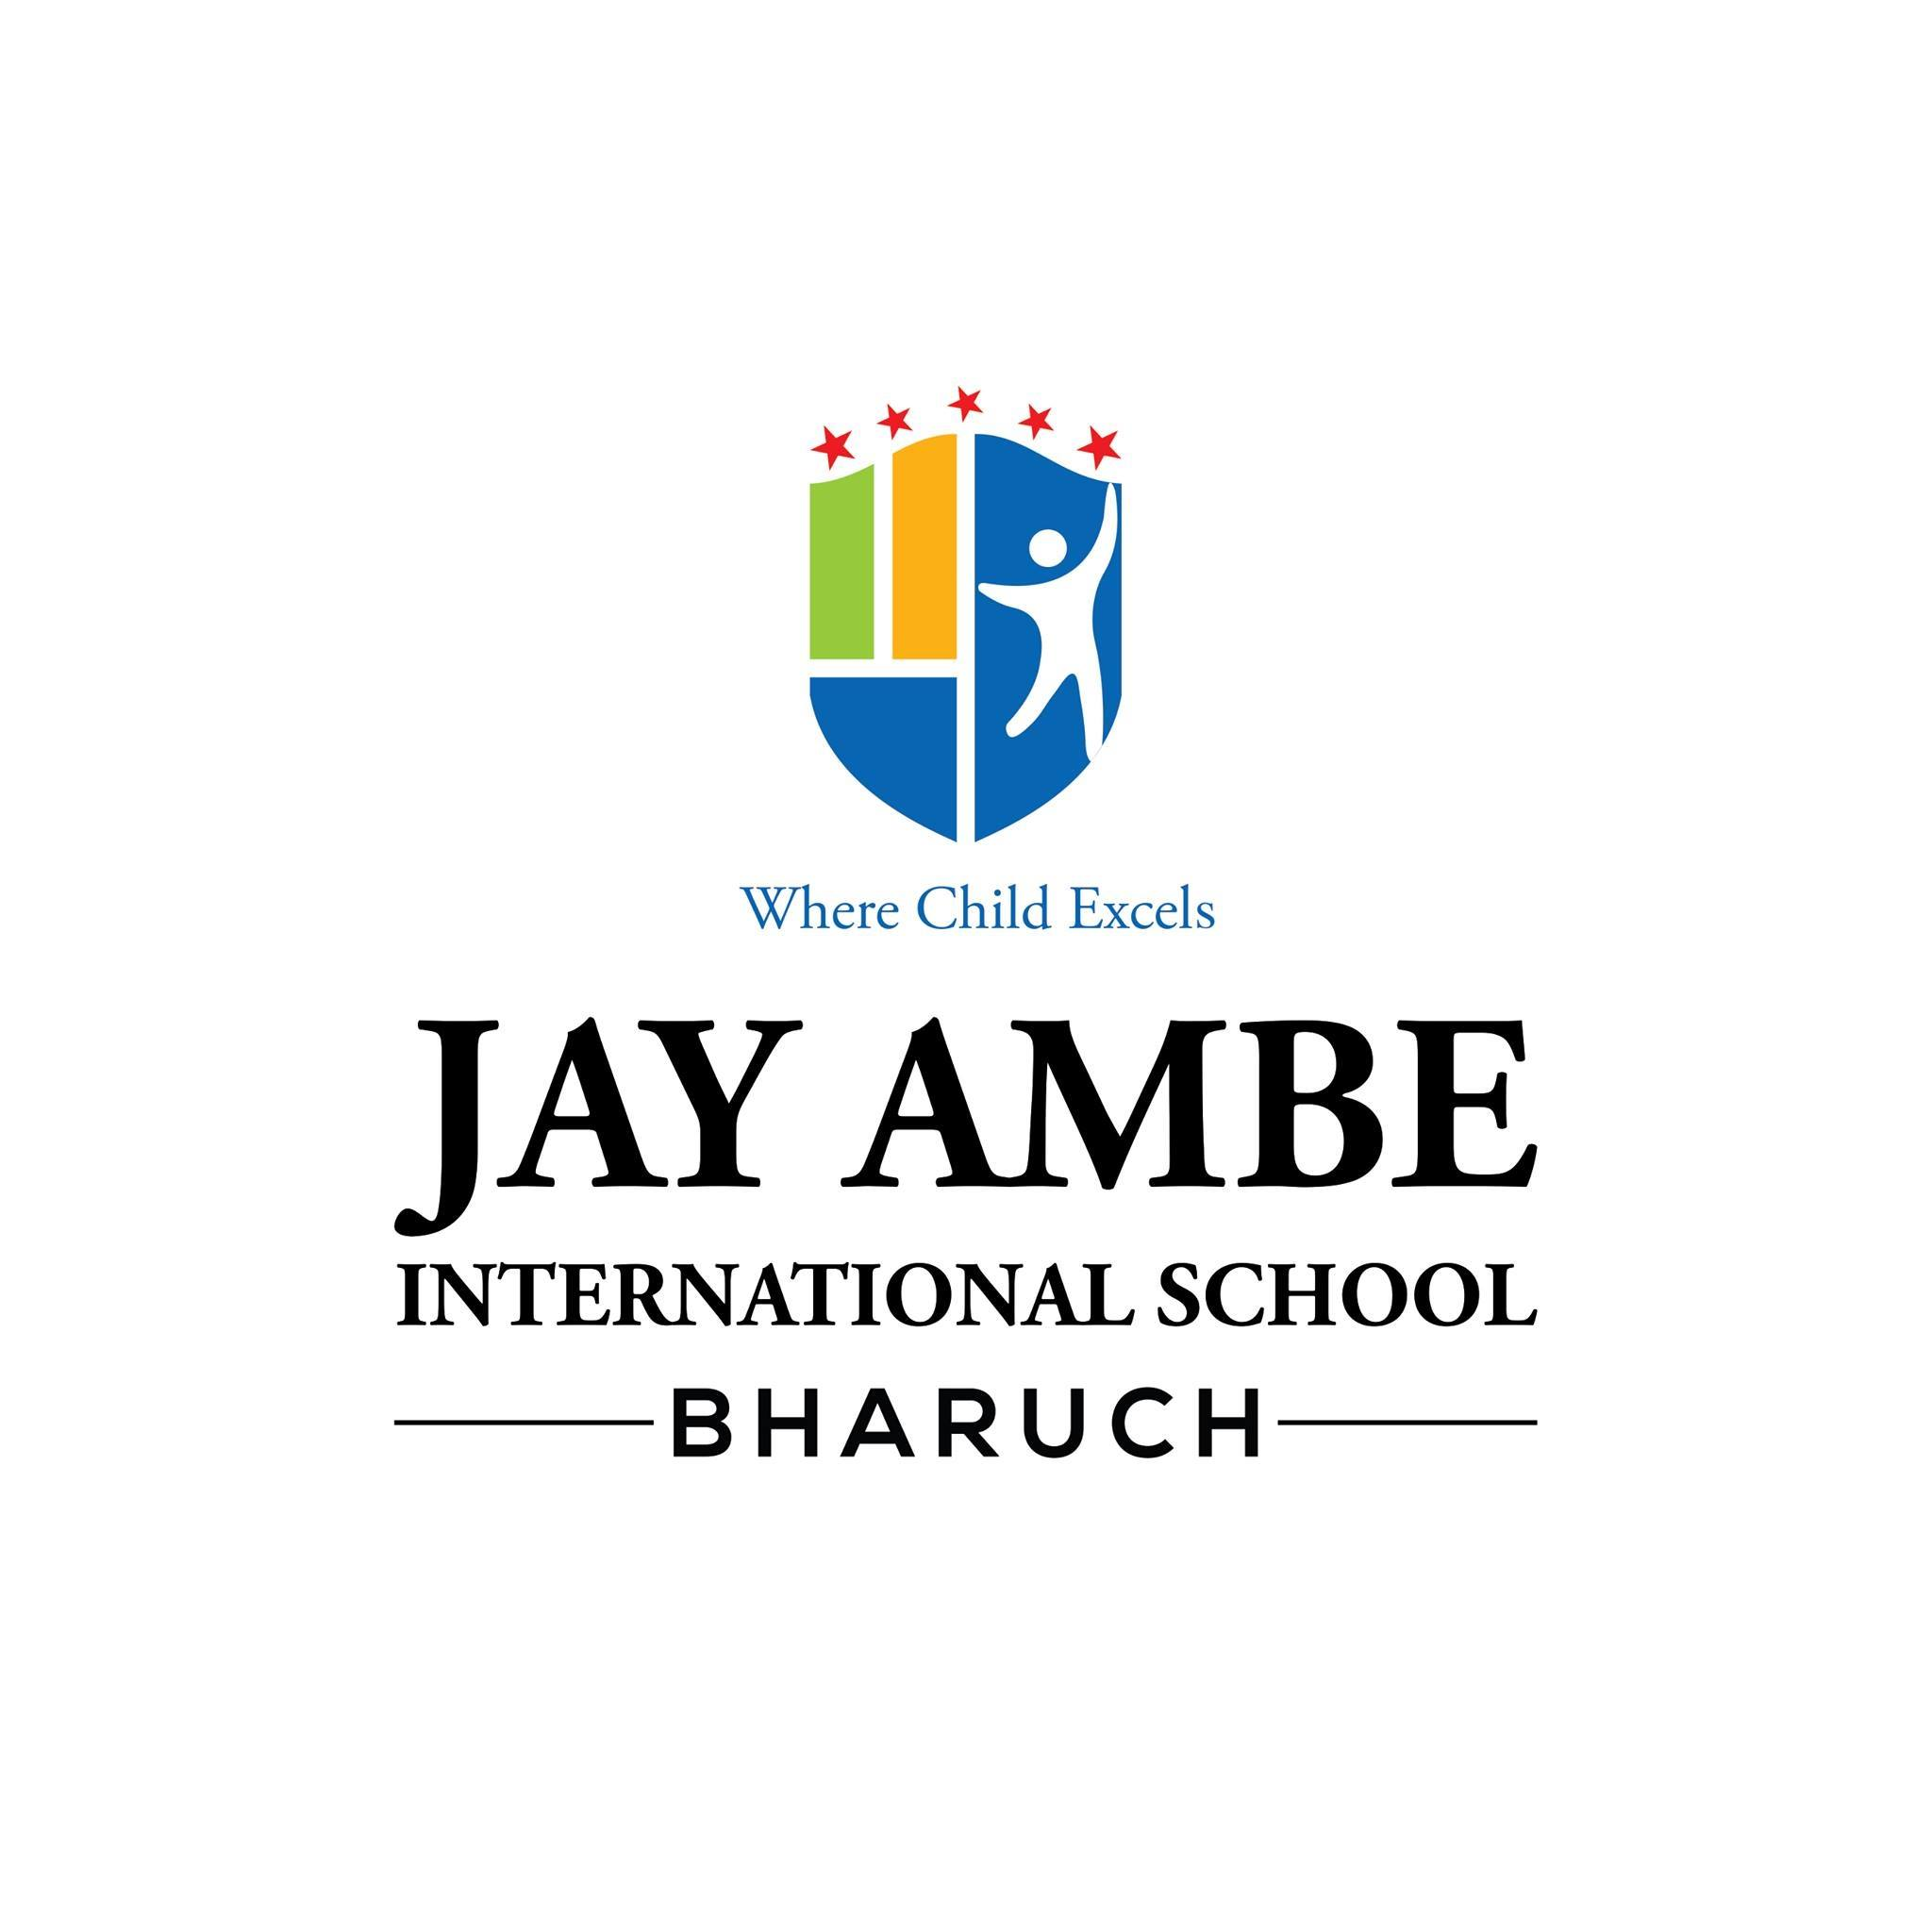 Jay Ambe International School